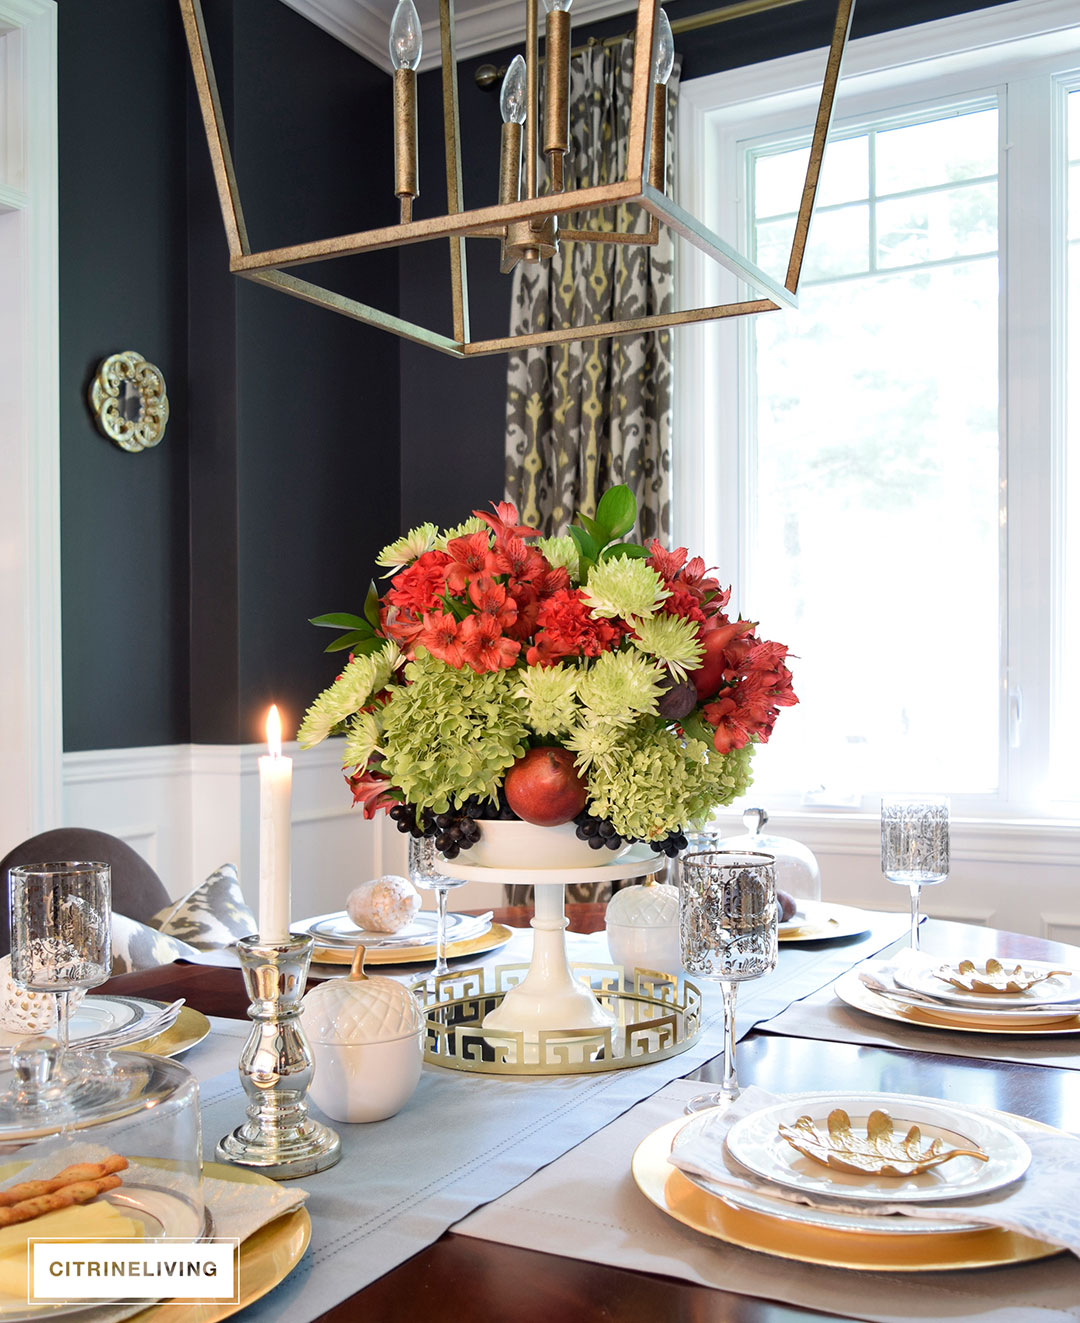 Fall tablescape with metallic touches featuring vibrant red, deep plum and verdant green centrepiece